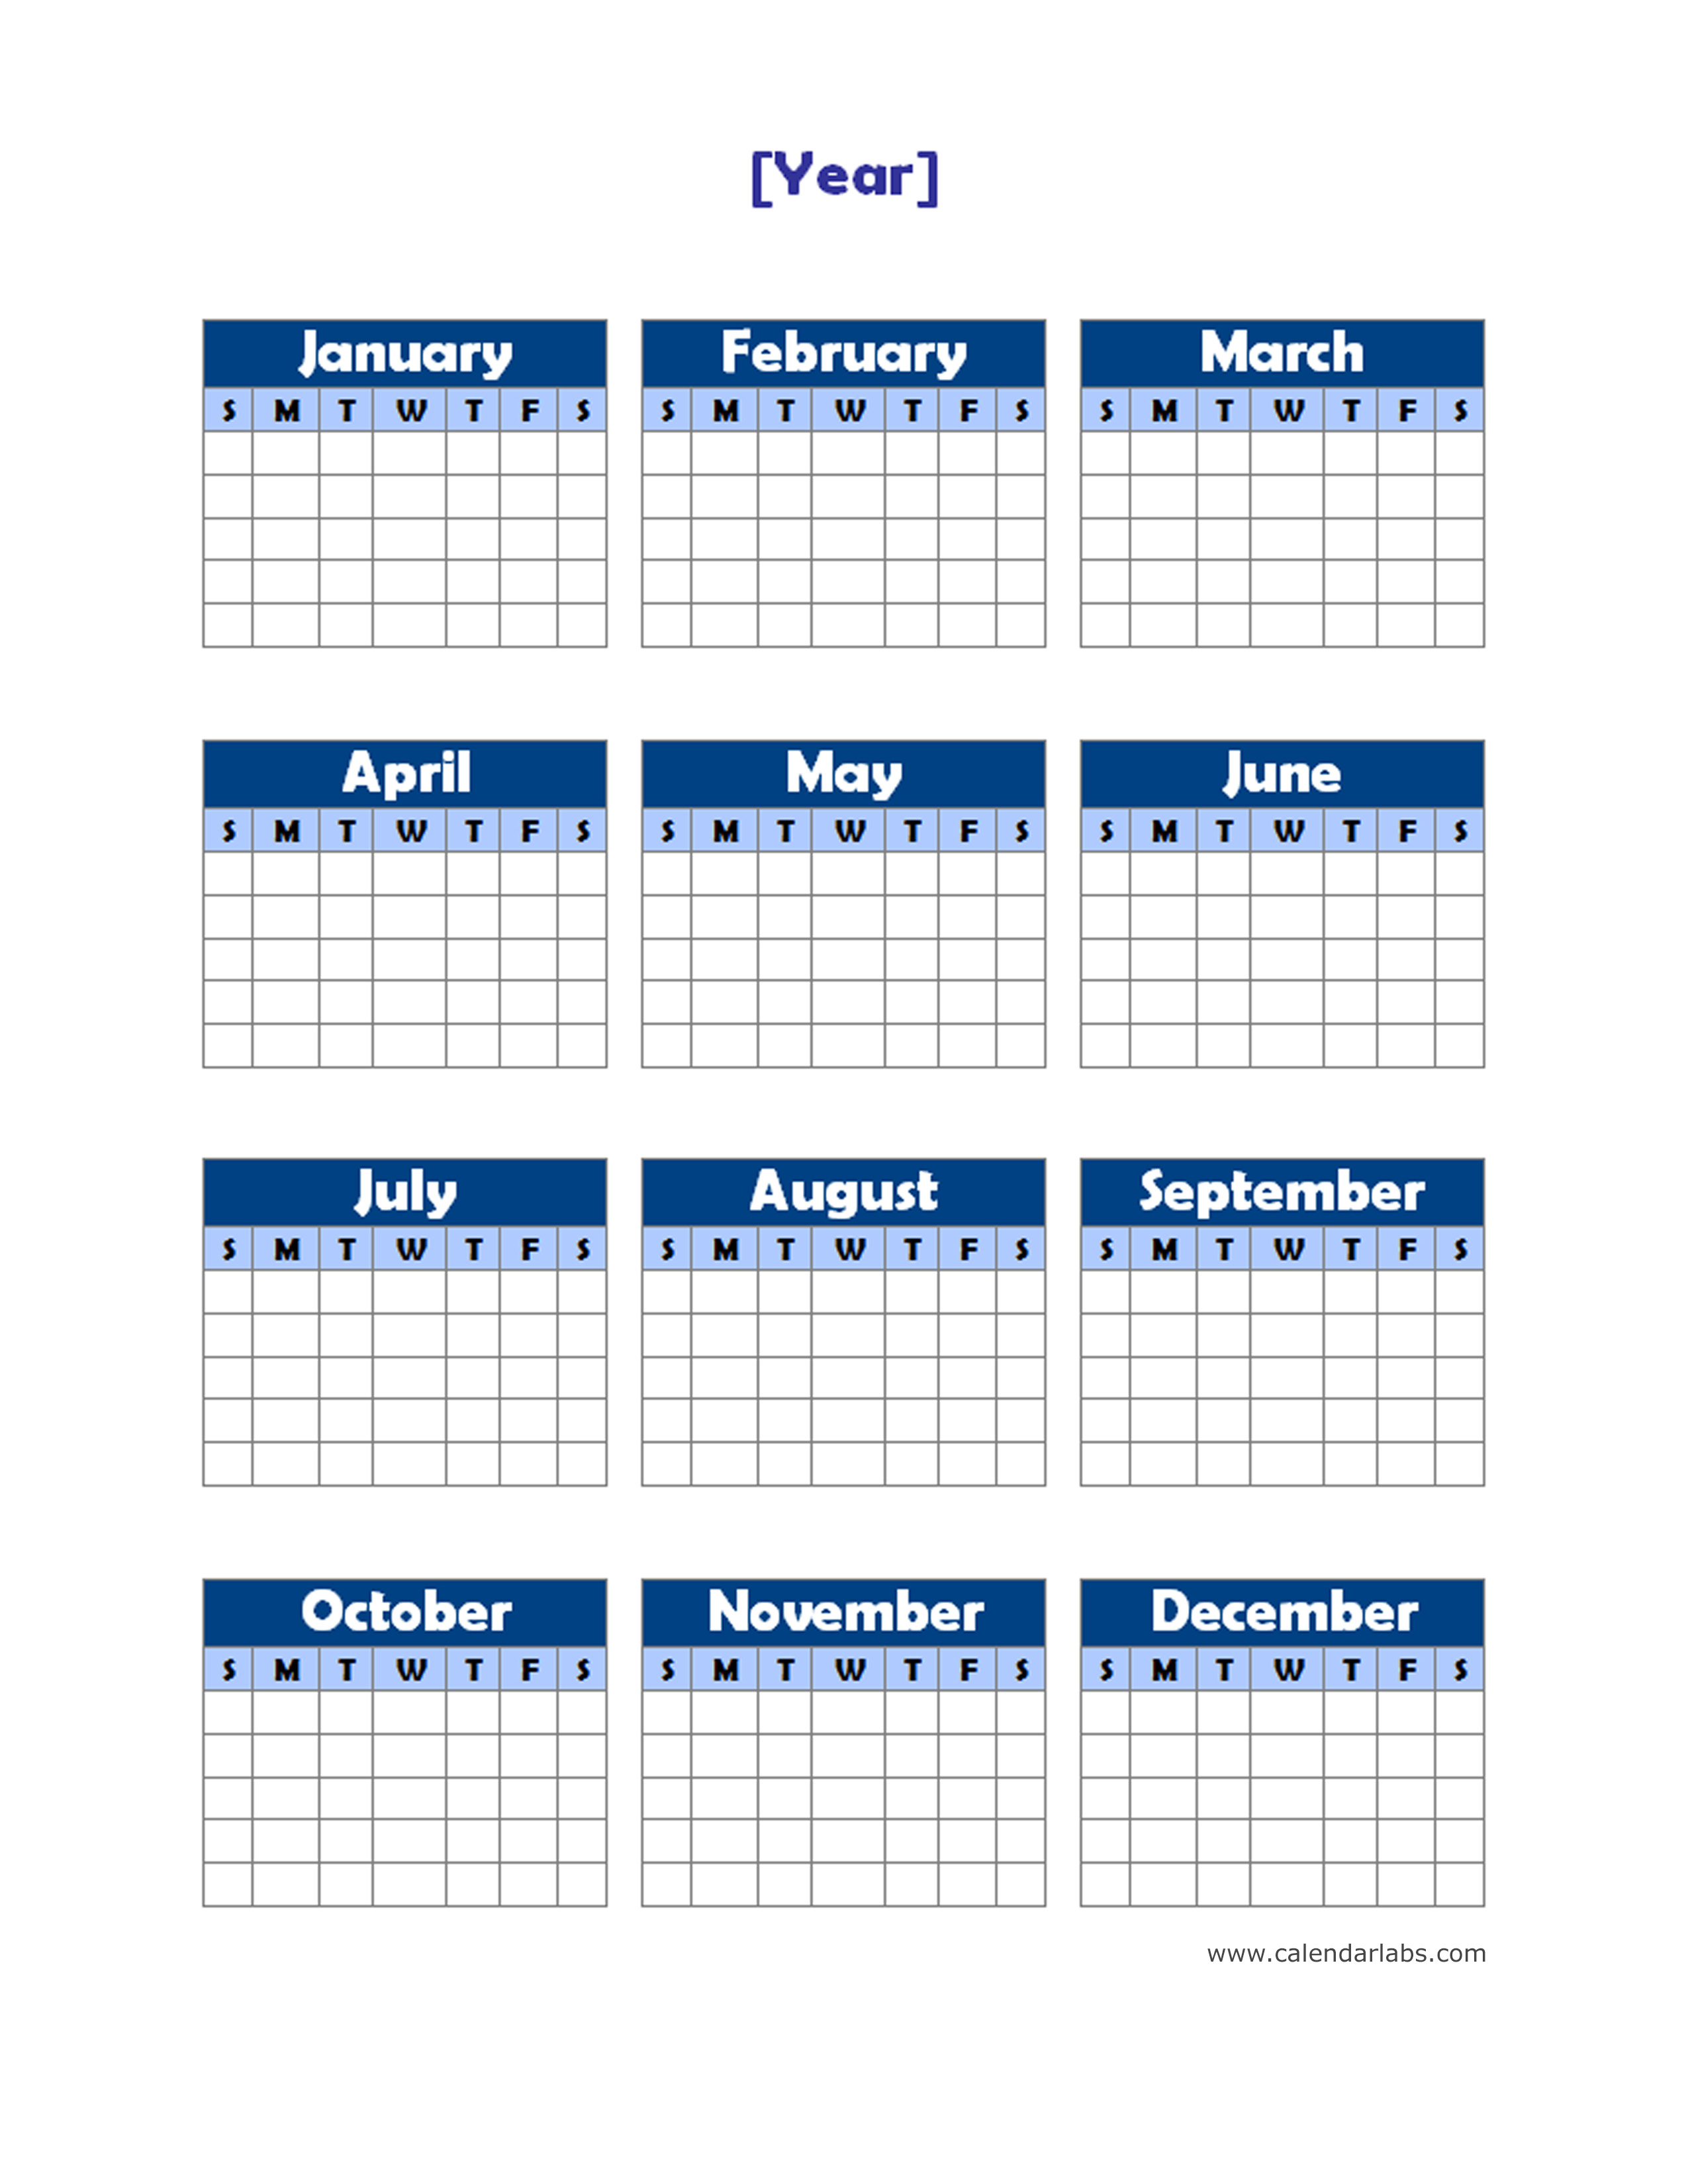 Generic Year Calendar : Yearly blank calendar potrait free printable templates